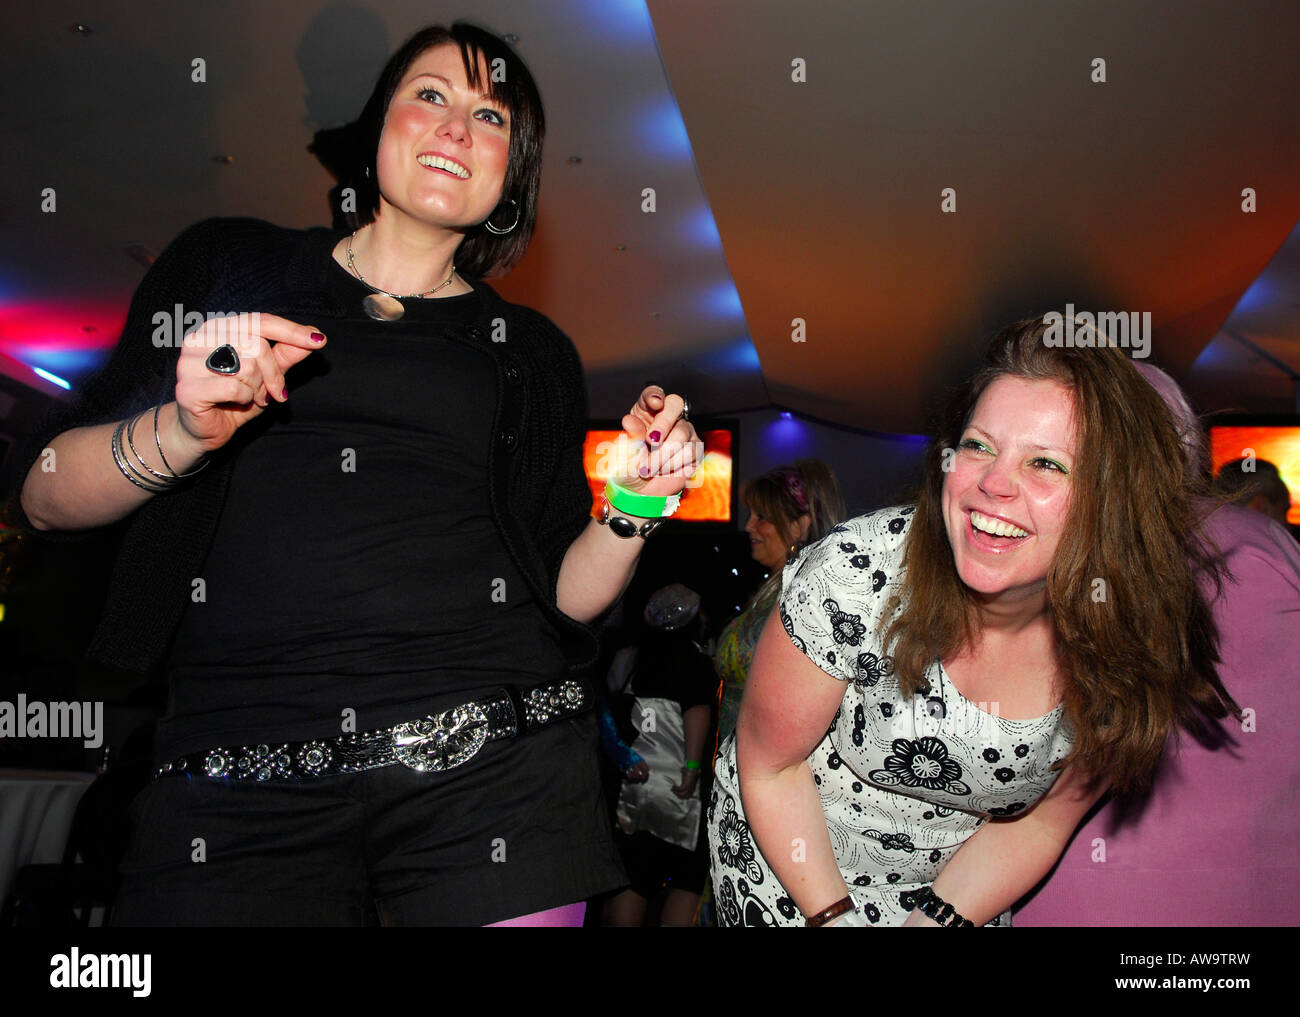 Girls night out, Hounslow, Middlesex, UK. - Stock Image